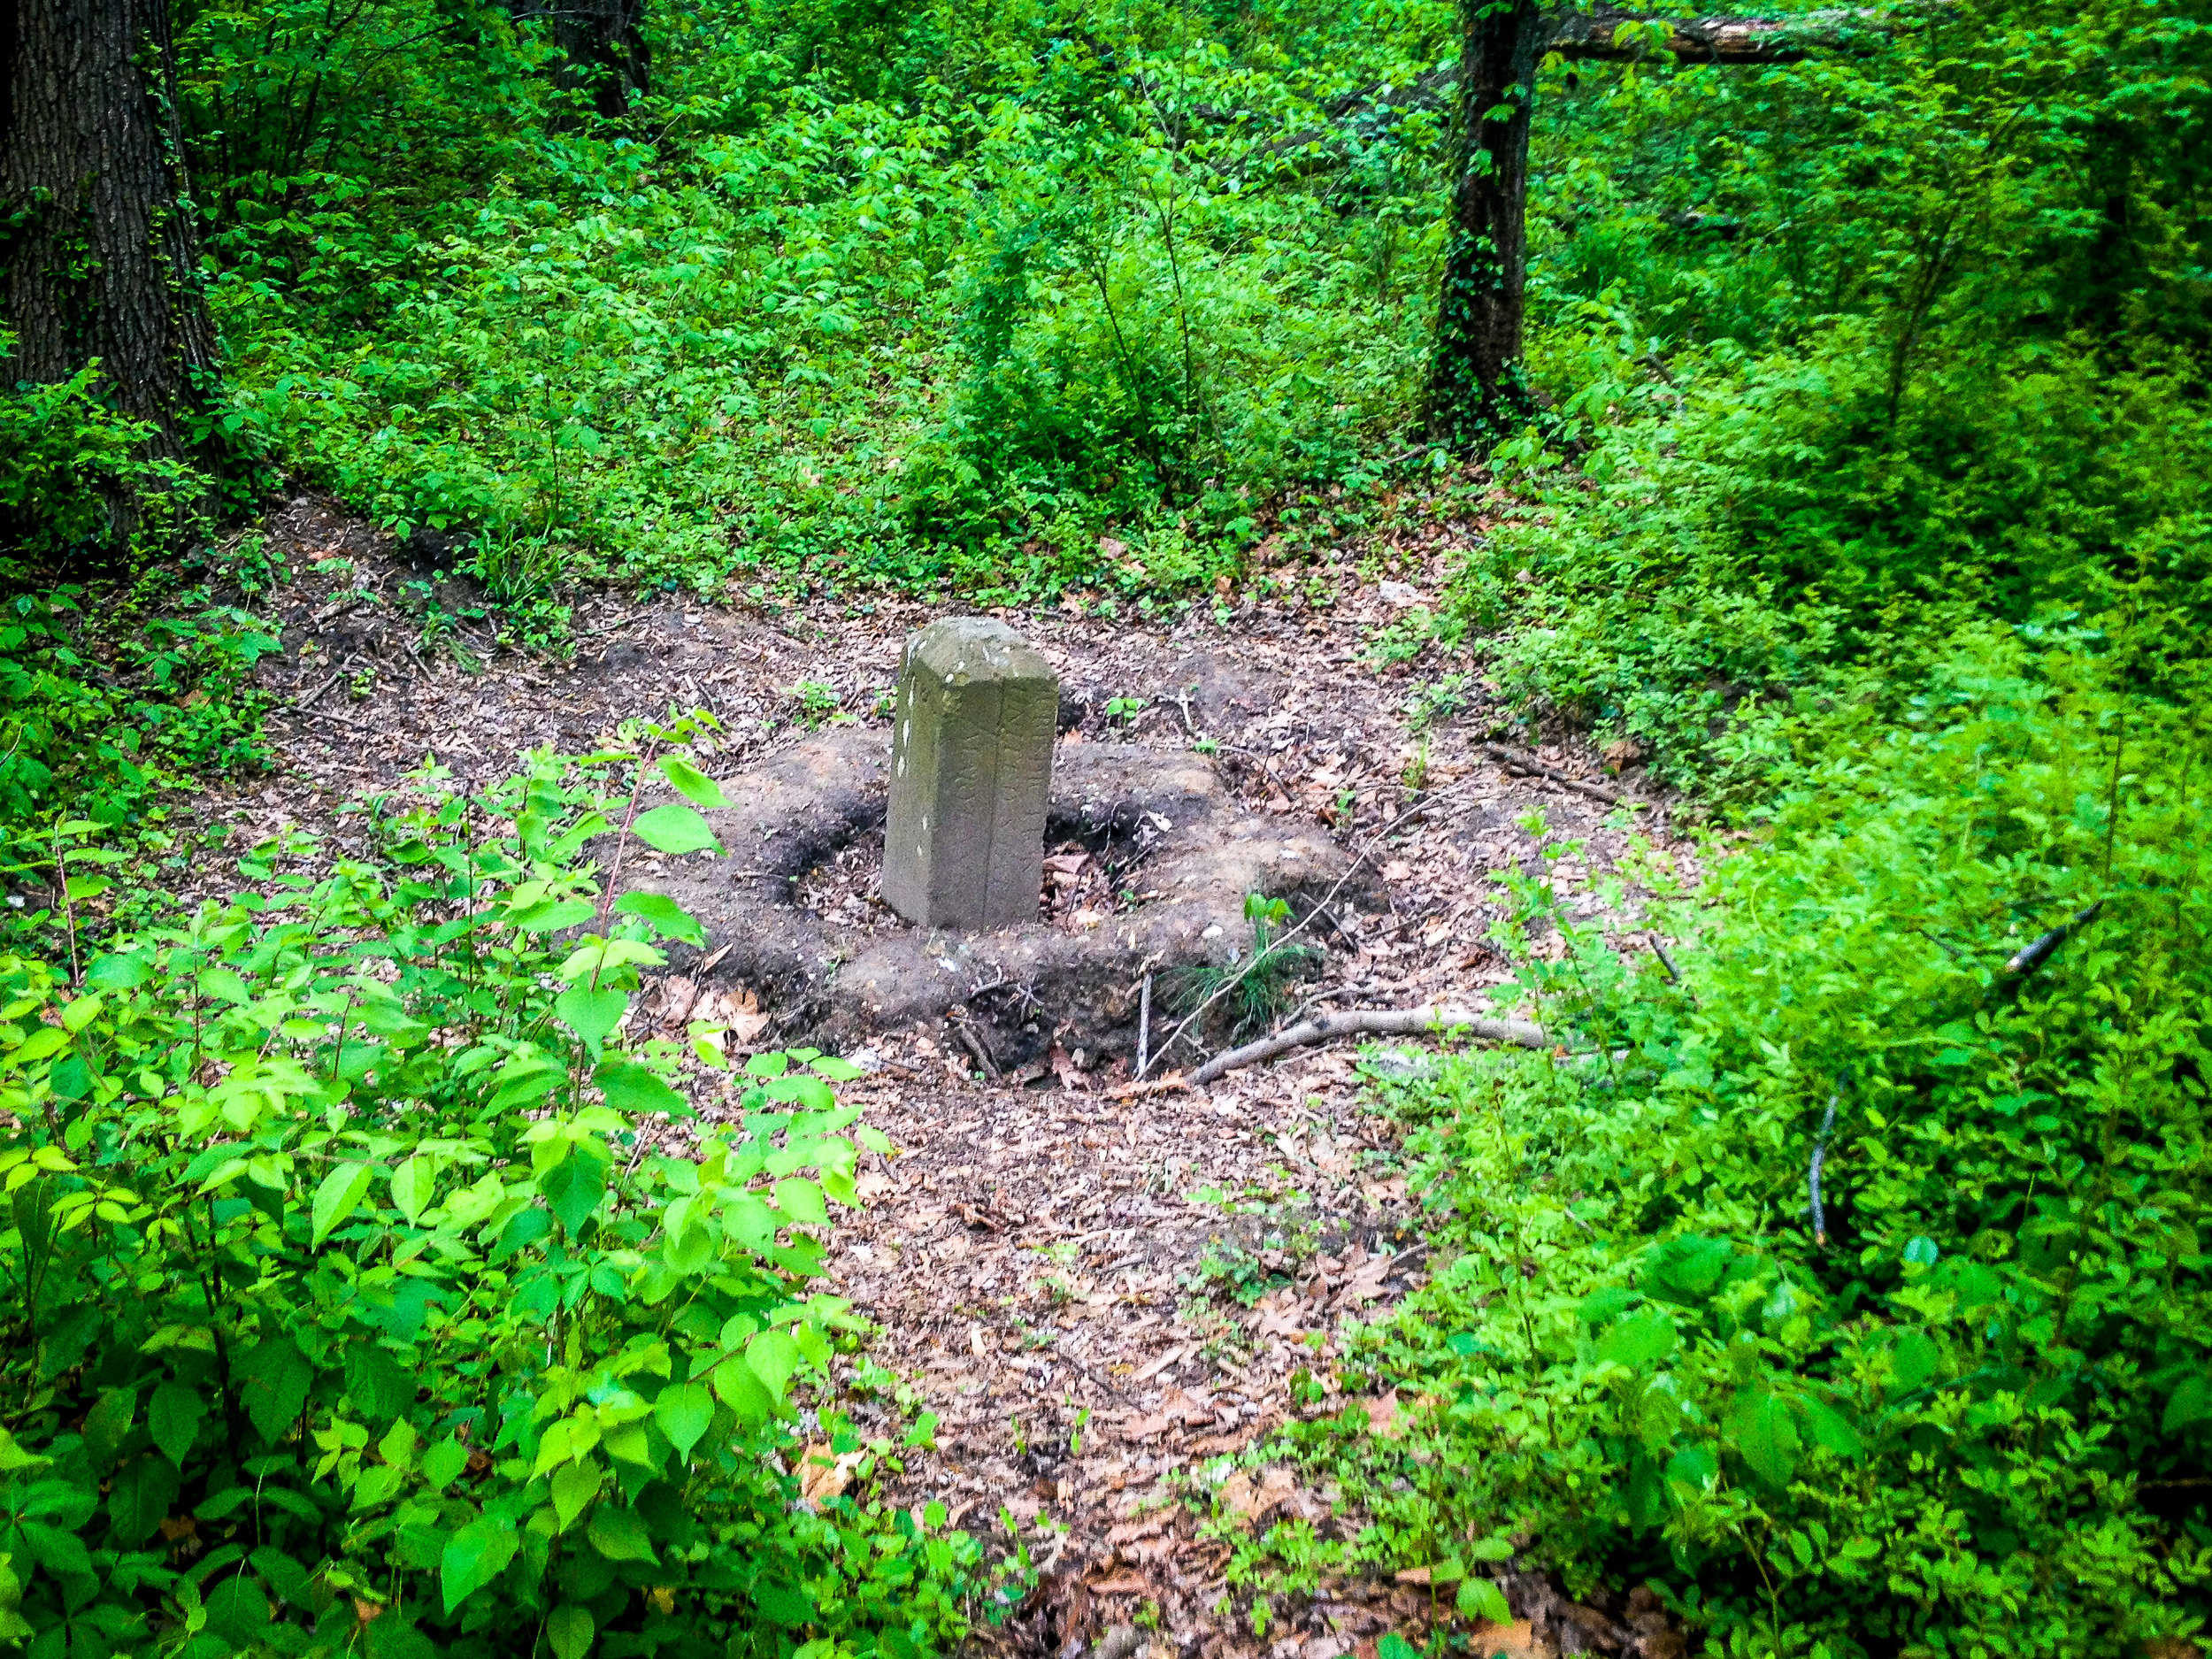 The East Stone - Off in the Woods